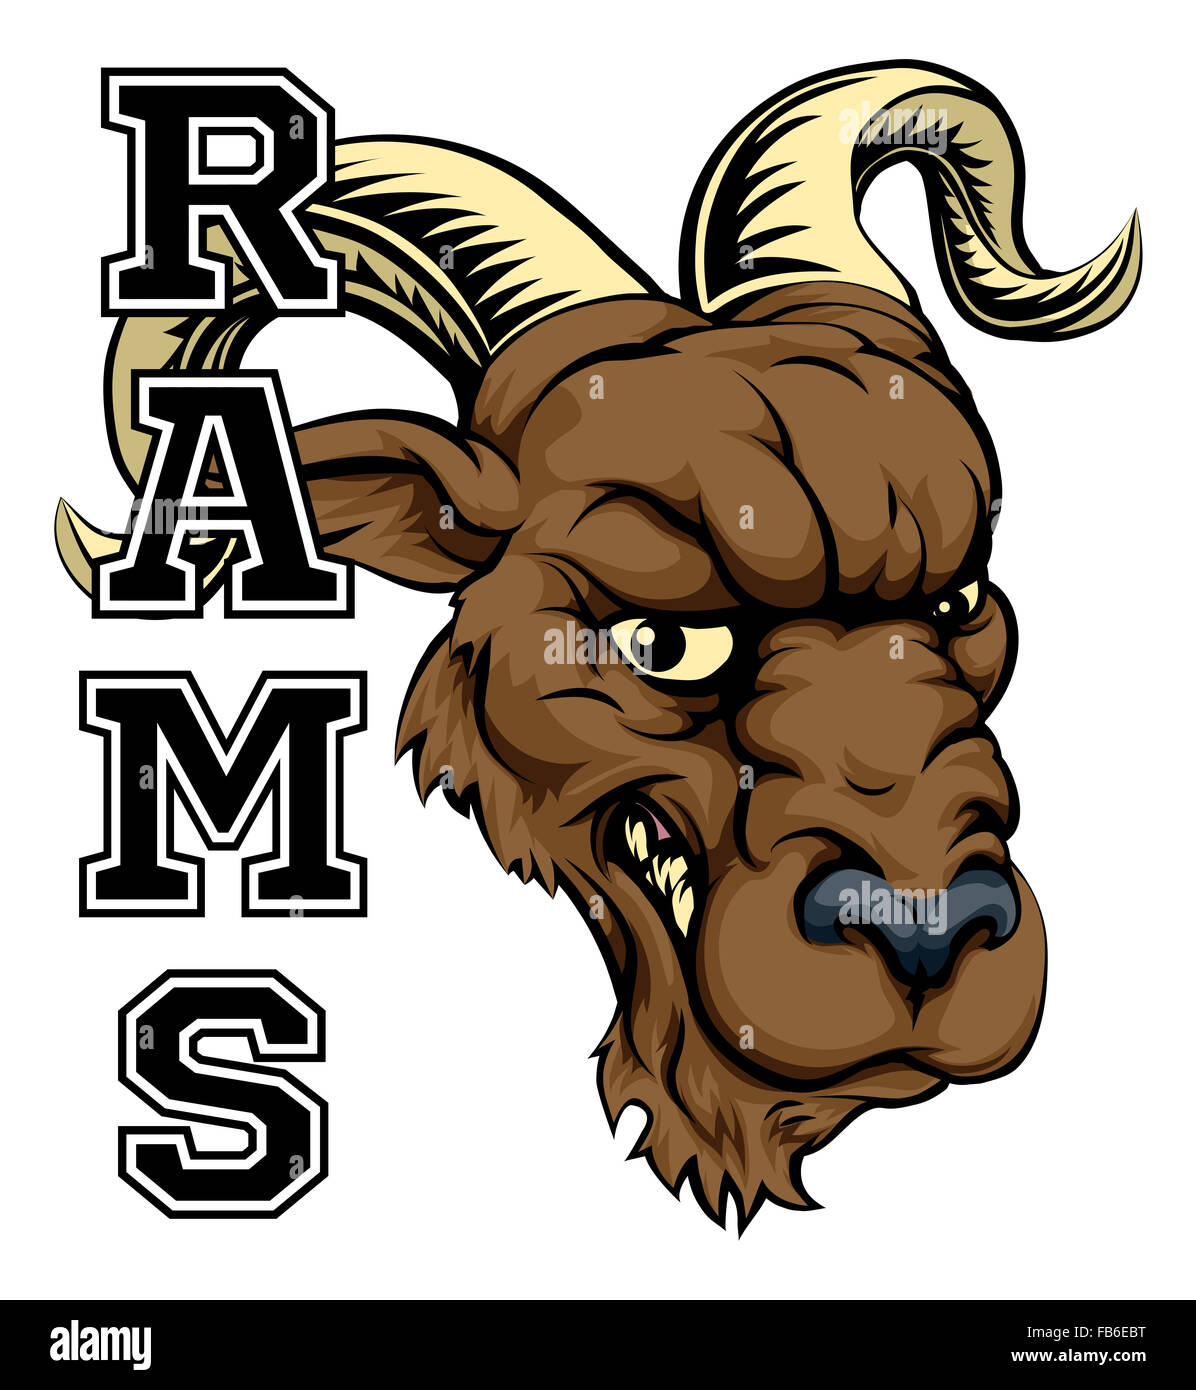 An Illustration Of A Cartoon Ram Sports Team Mascot With The Text Stock Photo Alamy